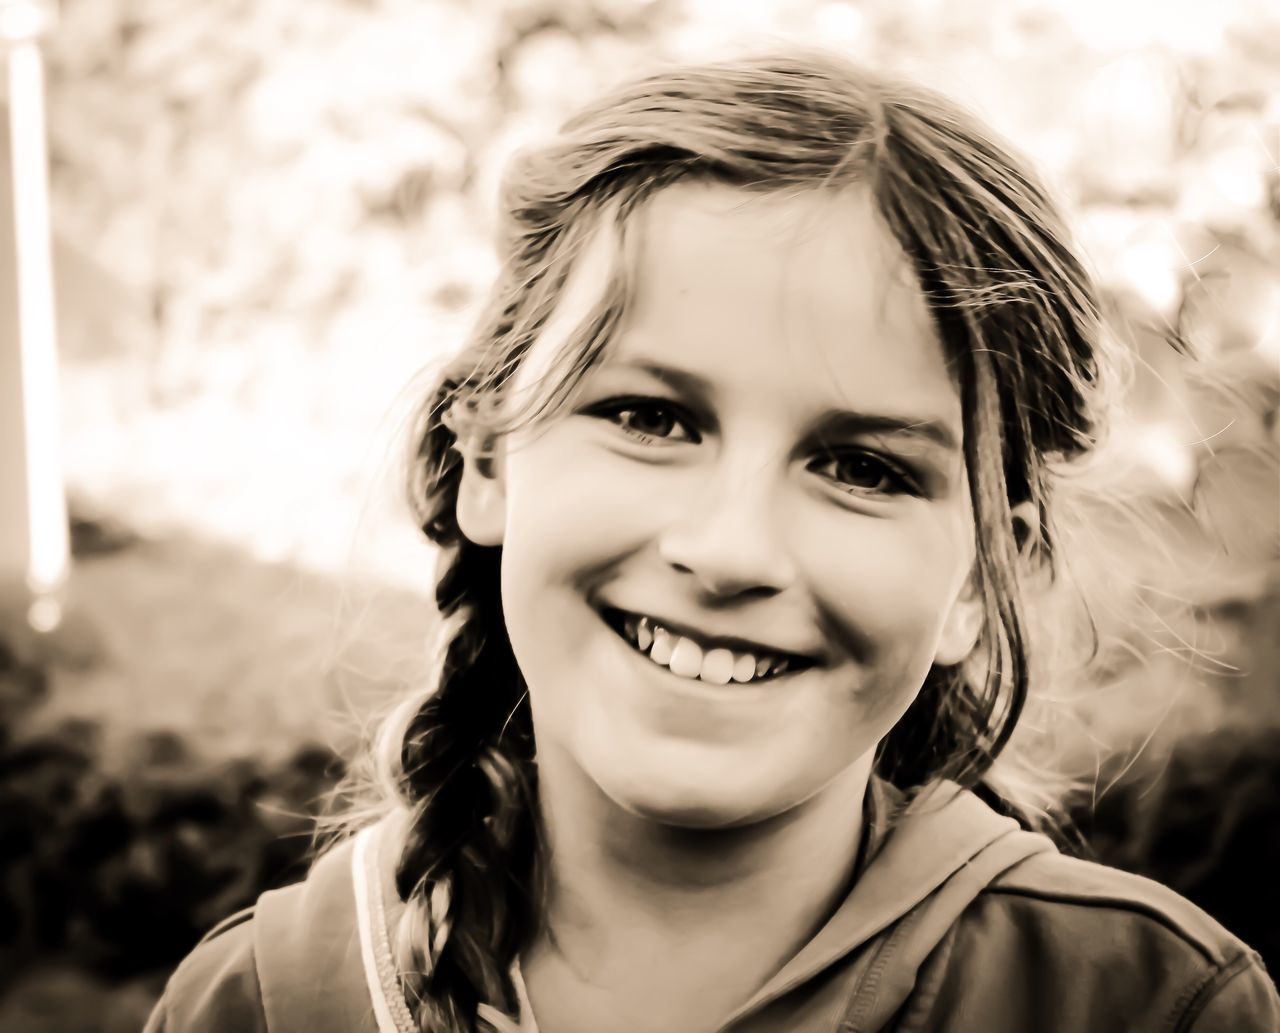 childhood, smiling, portrait, looking at camera, happiness, close-up, innocence, child, focus on foreground, headshot, children only, one person, real people, cheerful, outdoors, day, people